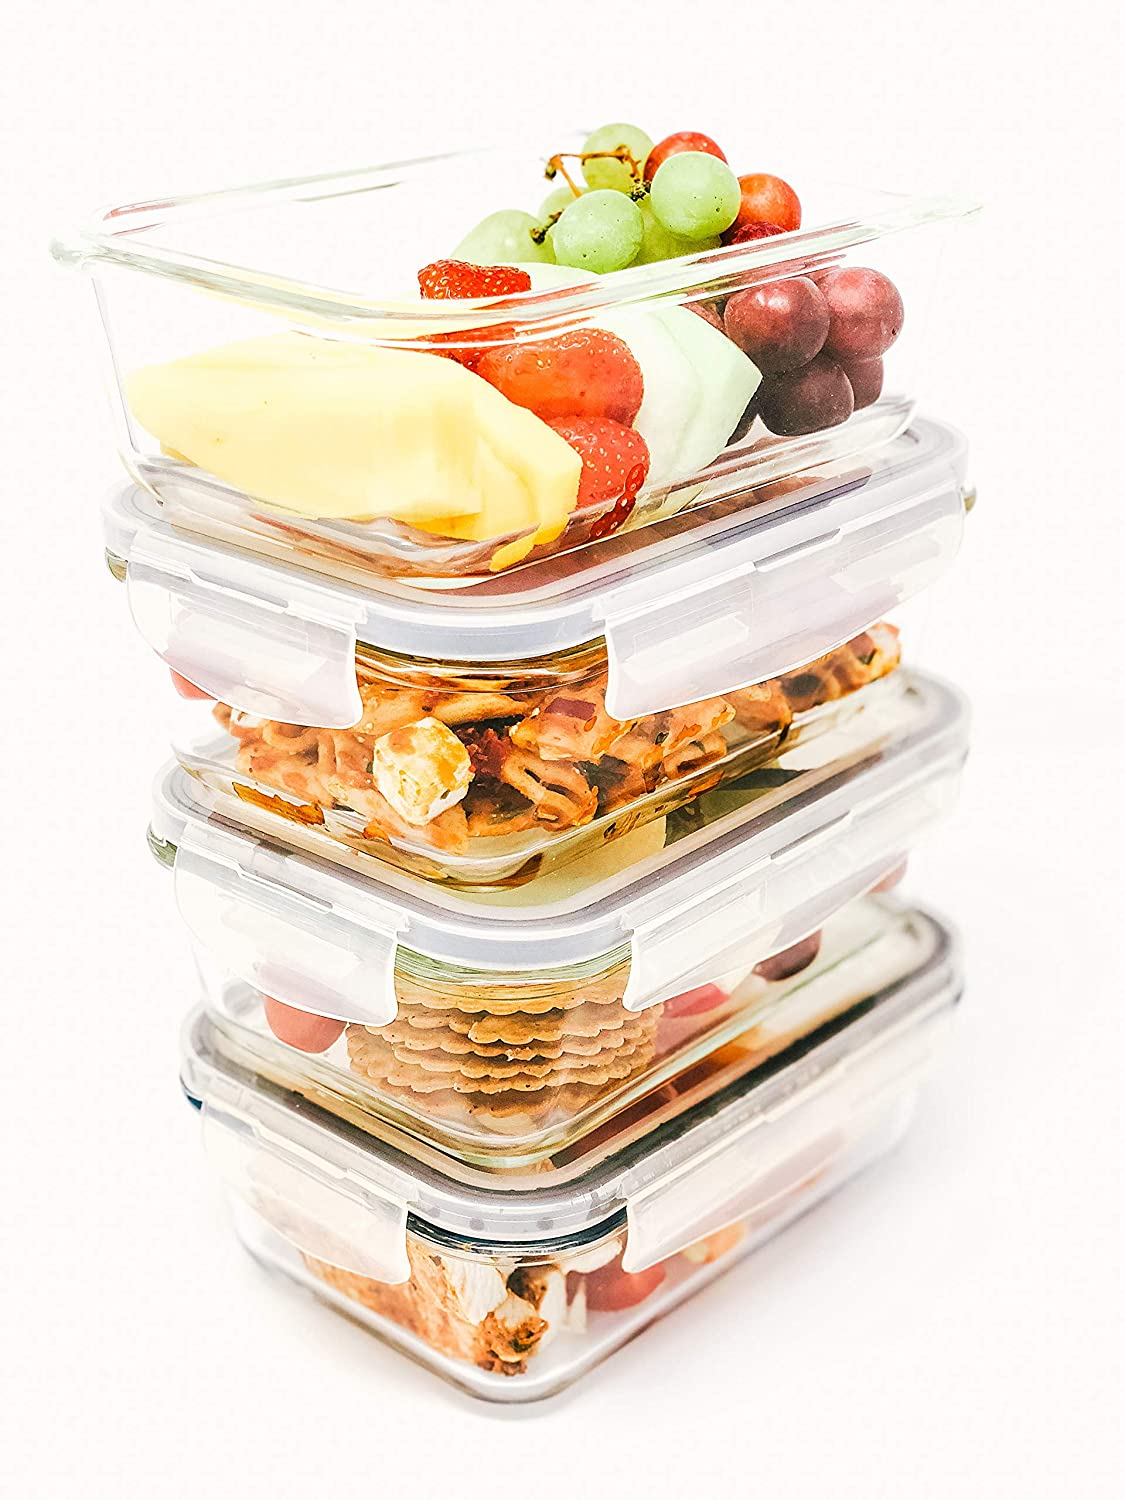 Glass meal prep storage containers , The ideal freezer containers for food , Reusable food glass storage containers with air tight lockable lids , Set of 4 lunch size reusable glass food prep containers perfect for oven, freezer and microwave , No quibble